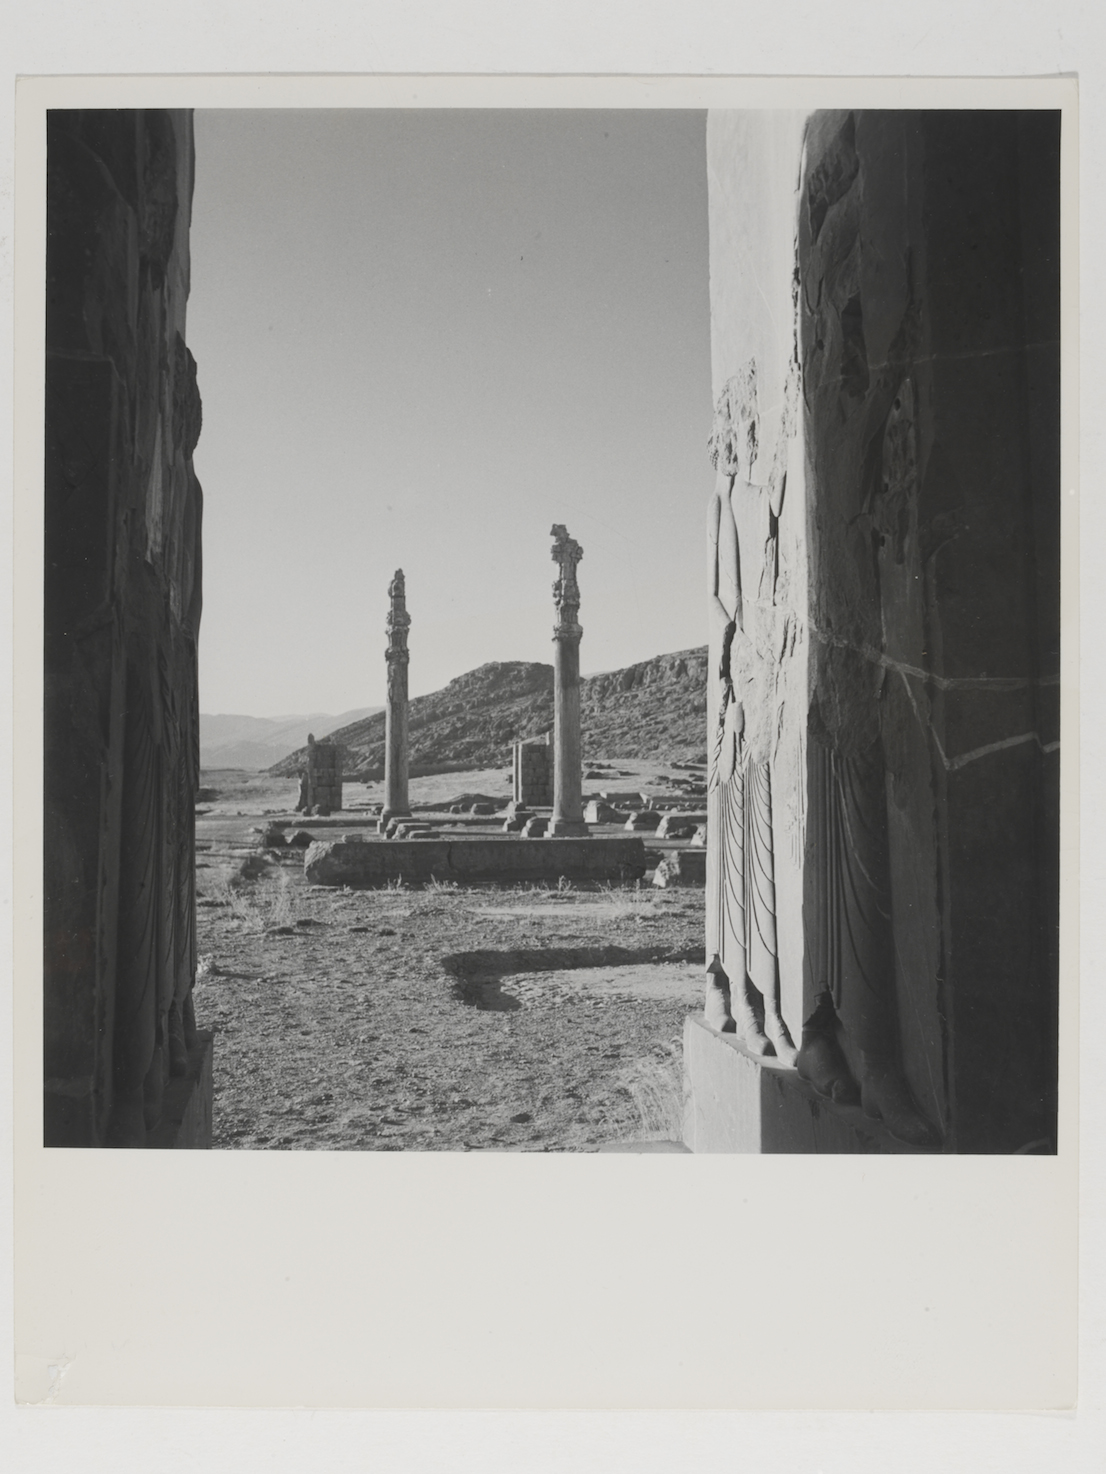 View of ruins at the palace of Persepolis, Persia, 1949. © Condé Nast / Horst Estate.